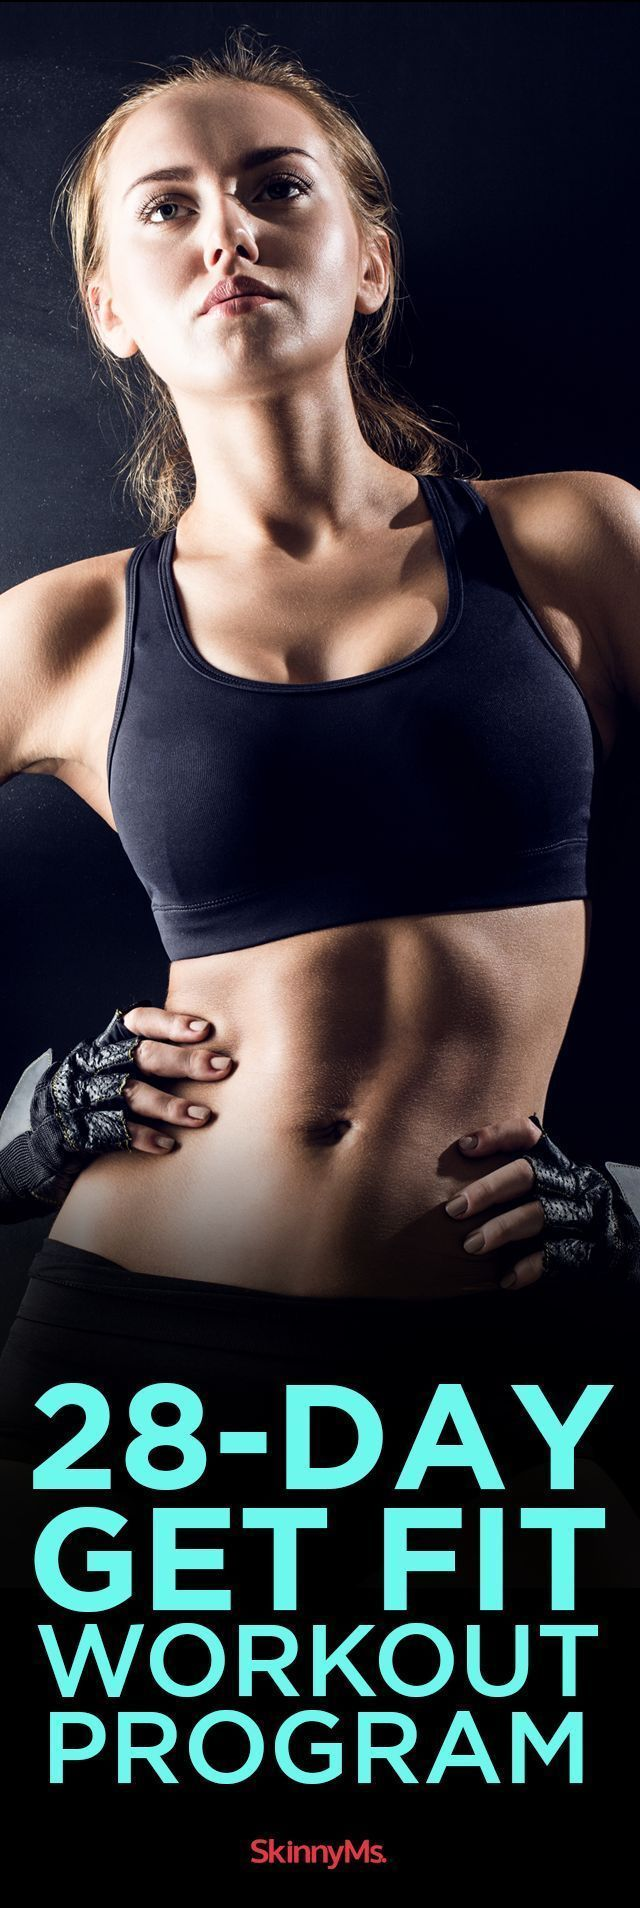 Develop strong, lean muscles with our 28-Day Get Fit Program! #SkinnyMs #challenge #fitness #goals